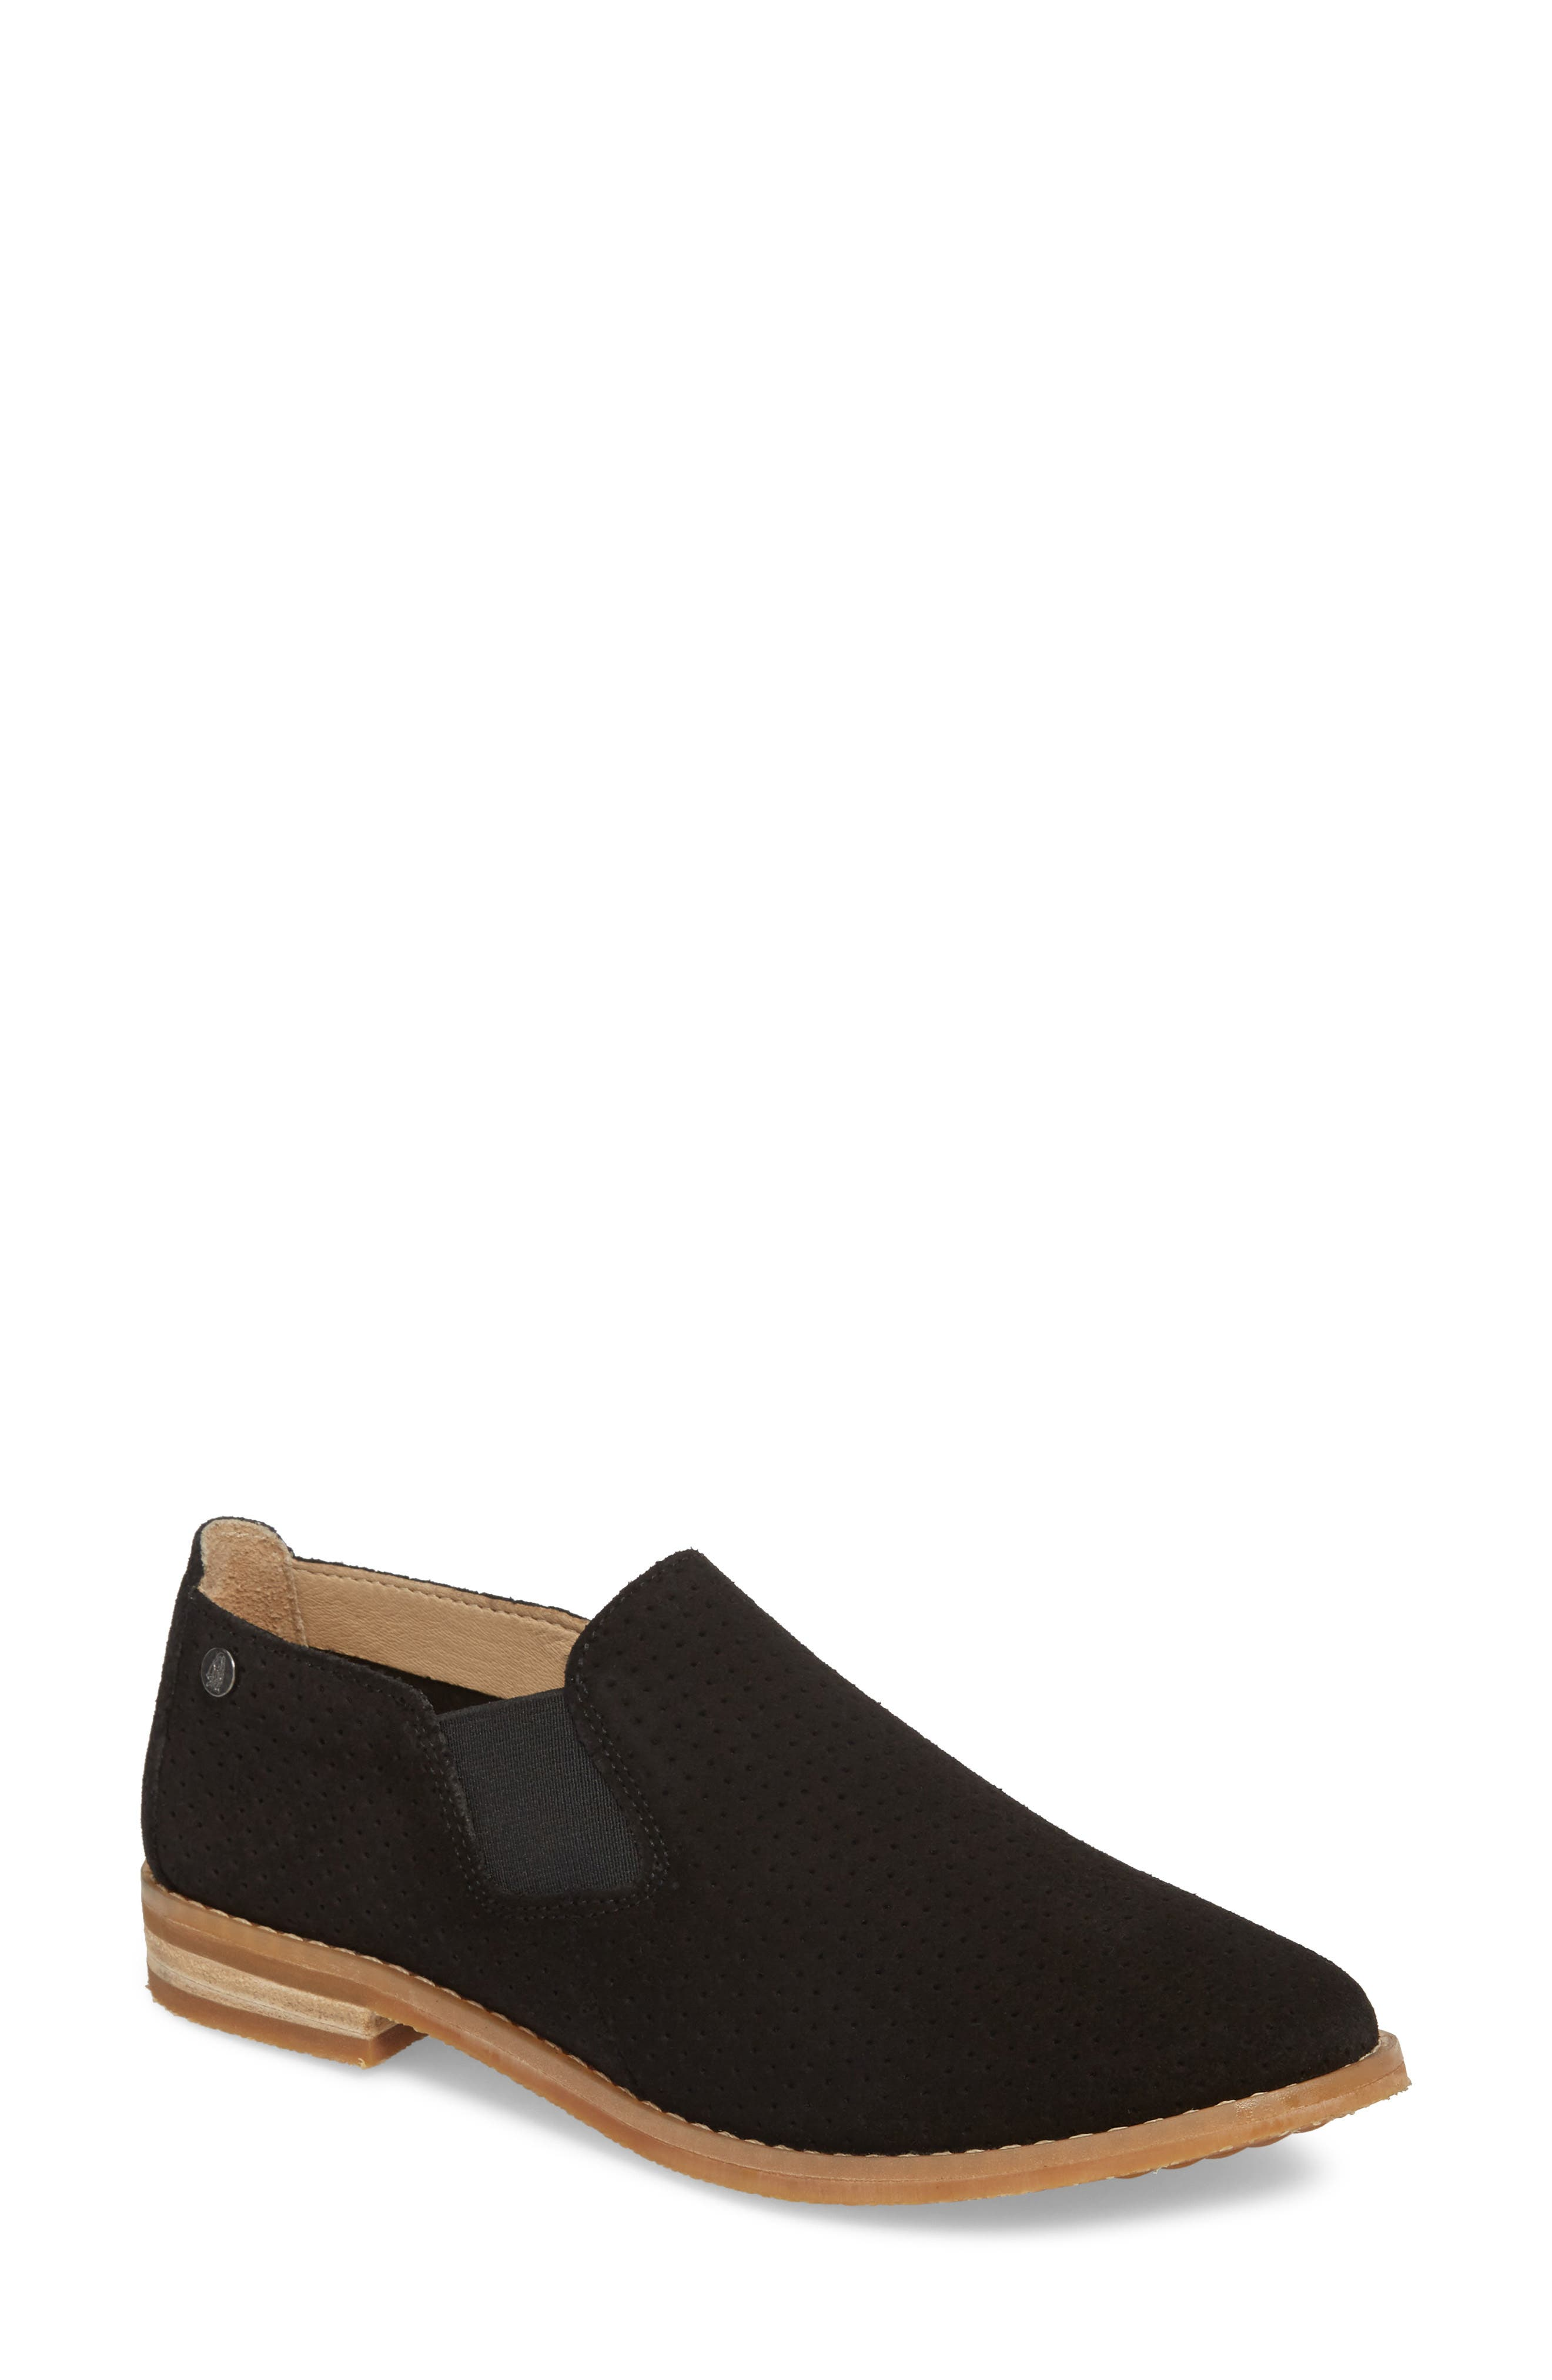 Hush Puppies Analise Clever Slip-On,                         Main,                         color, 001